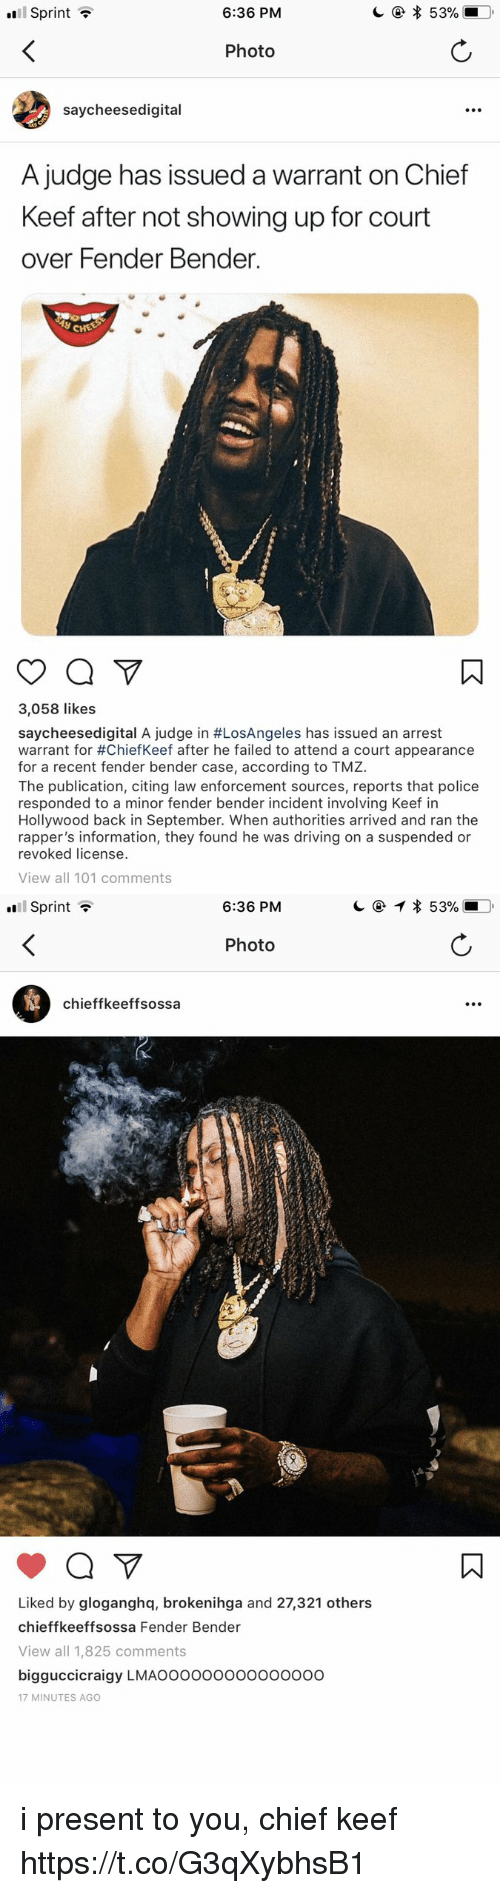 Chiefkeef: Sprint ?  6:36 PM  Photo  saycheesedigital  A judge has issued a warrant on Chief  Keef after not showing up for court  over Fender Bender.  3,058 likes  saycheesedígital A judge in #LosAngeles has issued an arrest  warrant for #ChiefKeef after he failed to attend a court appearance  for a recent fender bender case, according to TMZ.  The publication, citing law enforcement sources, reports that police  responded to a minor fender bender incident involving Keef in  Hollywood back in September. When authorities arrived and ran the  rapper's information, they found he was driving on a suspended or  revoked license.  View all 101 comments   Sprint ?  6:36 PM  Photo  chieffkeeffsossa  Liked by gloganghq, brokenihga and 27,321 others  chieffkeeffsossa Fender Bender  View all 1,825 comments  bigguccicraigy LMAOooooooo000oo0o  17 MINUTES AGO i present to you, chief keef https://t.co/G3qXybhsB1